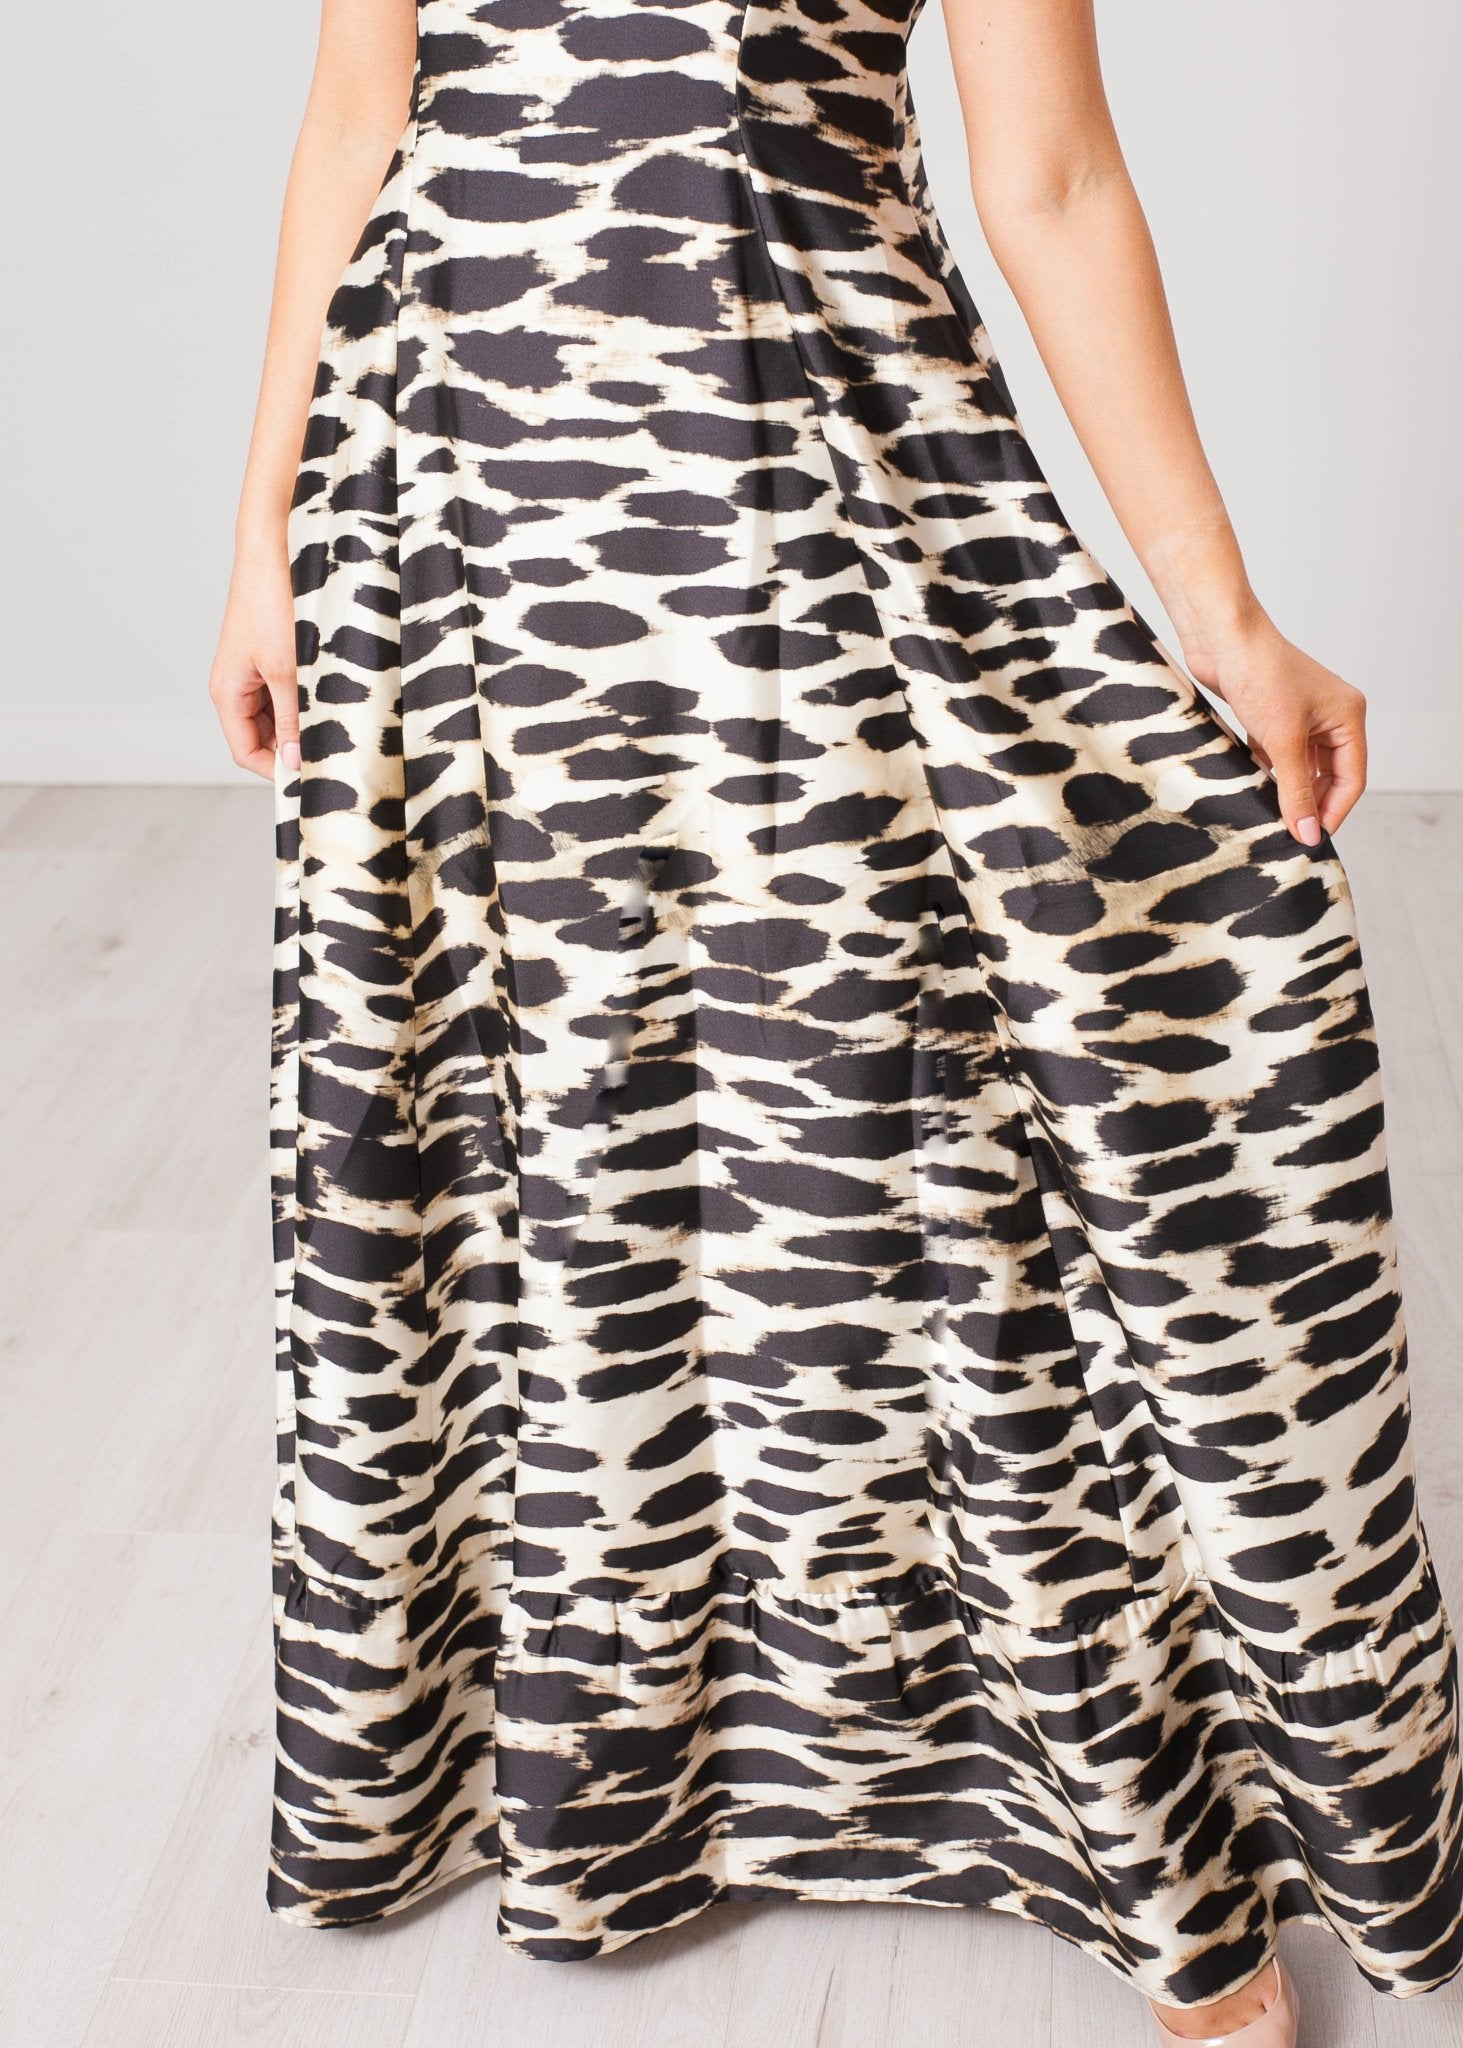 Rita Animal Print Dress - The Walk in Wardrobe